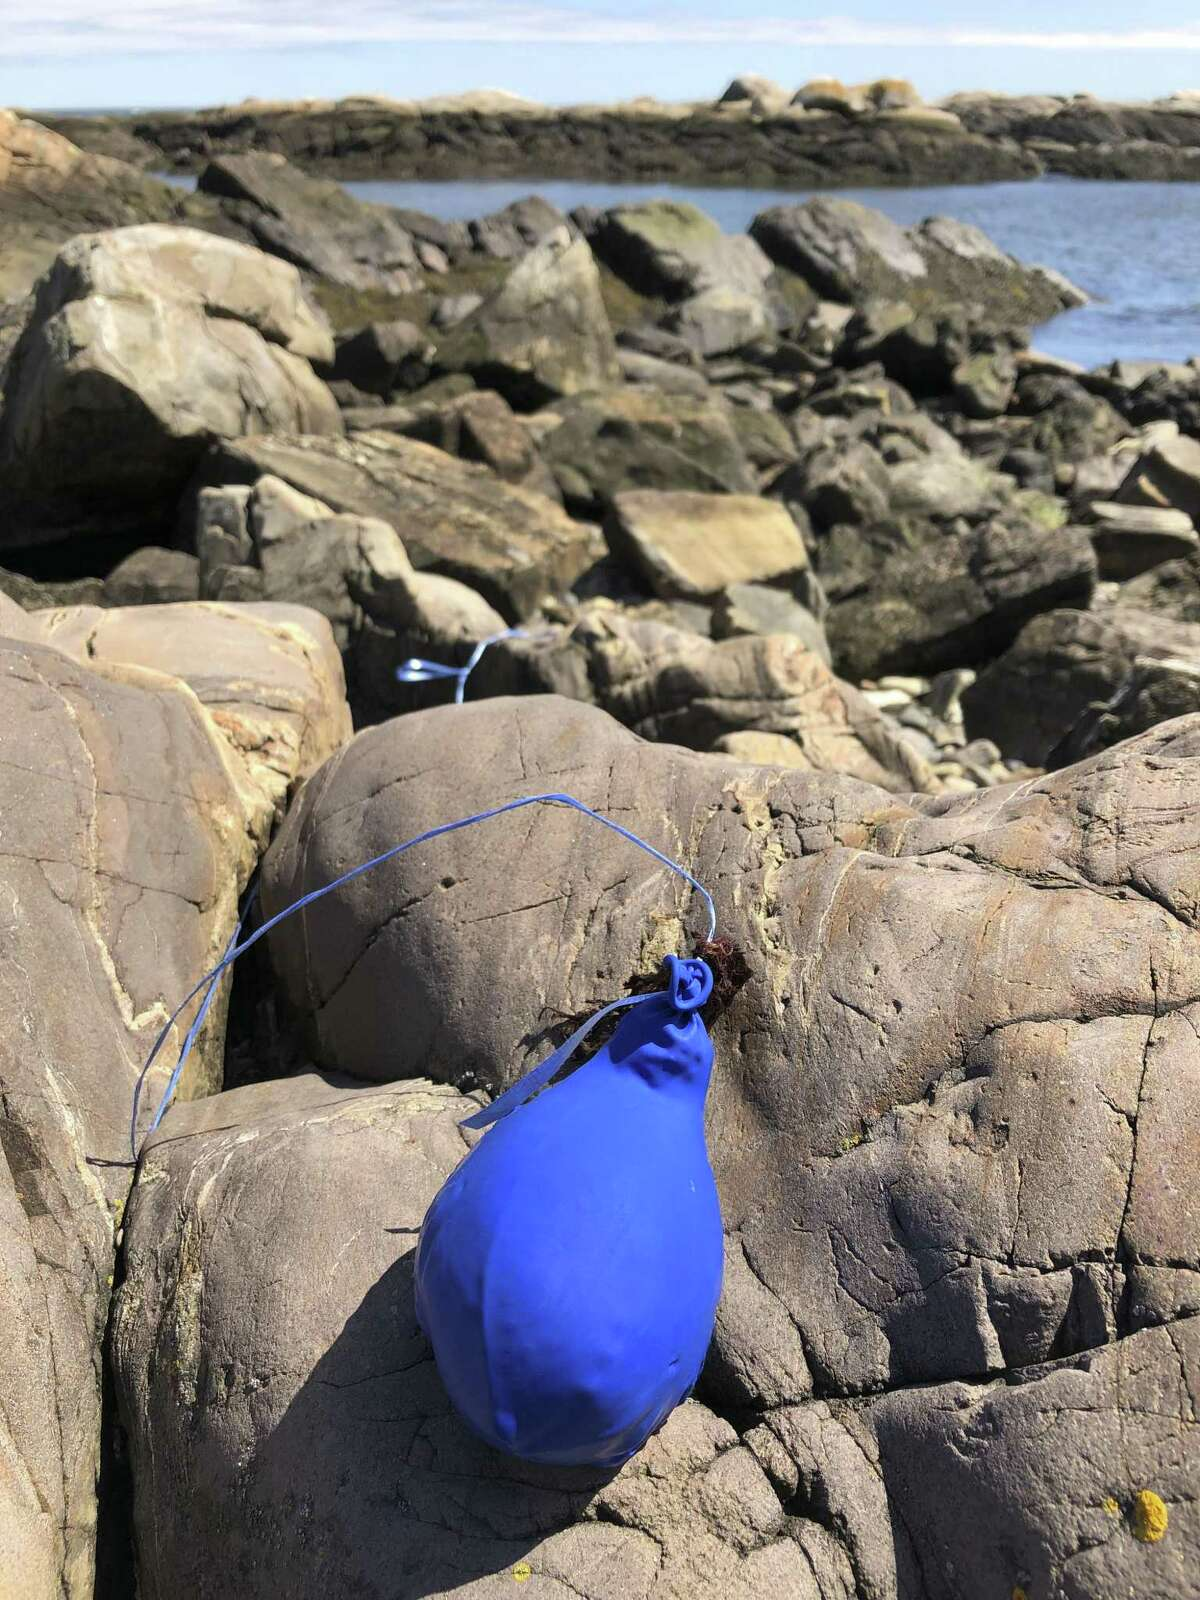 A balloon sits tangled on the rocky coast after washing ashore. Bills are pending in a growing number of states to ban the feel-good tradition of releasing helium-filled balloons at events, since they have the unintended consequence of spoiling the environment and threatening wildlife.